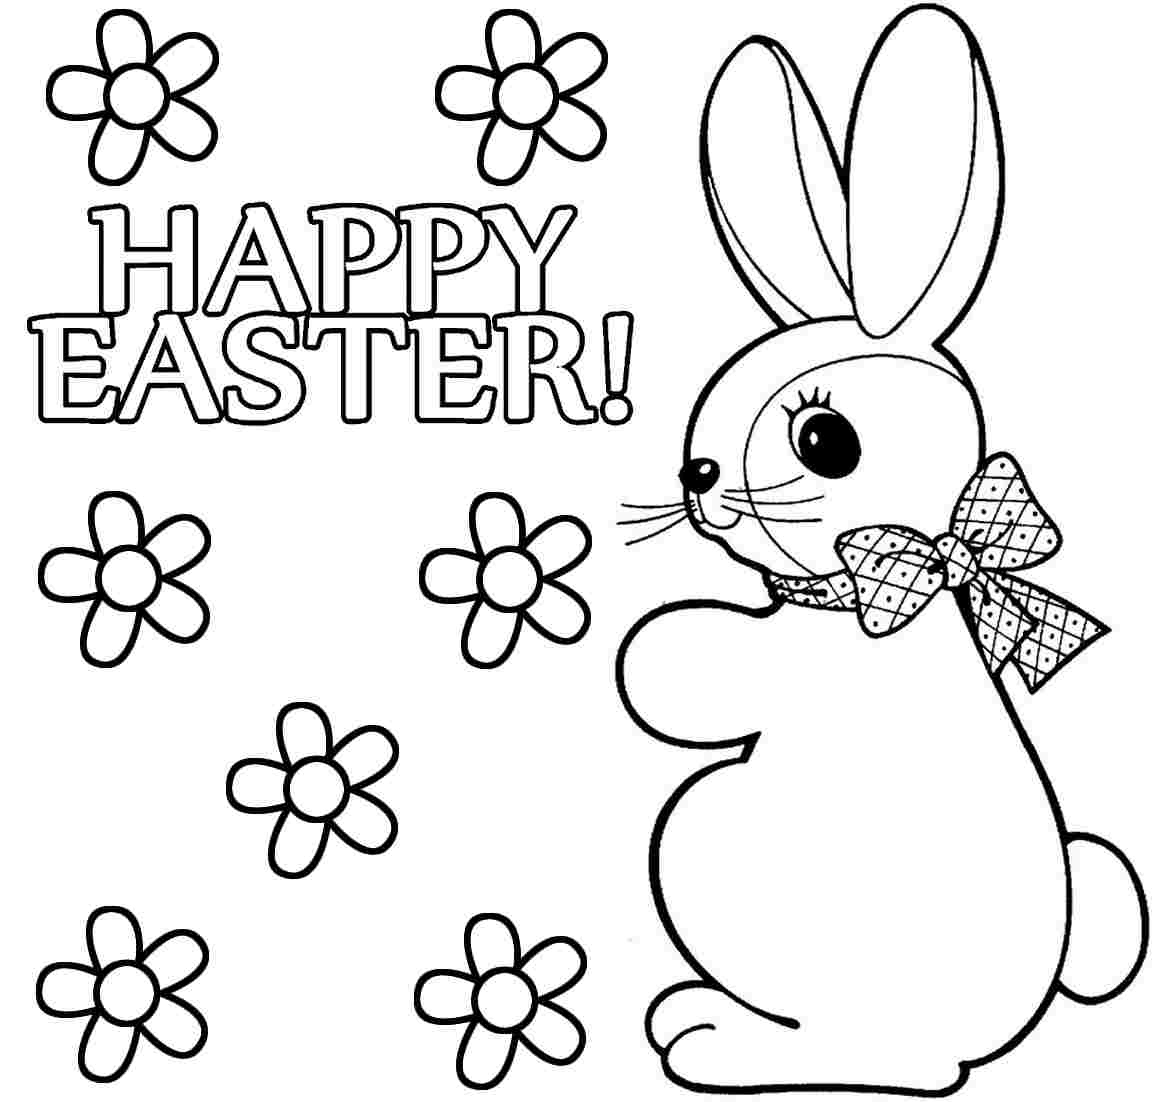 1152x1102 Easter Bunny Coloring Pages New Happy Easter Coloring Pages